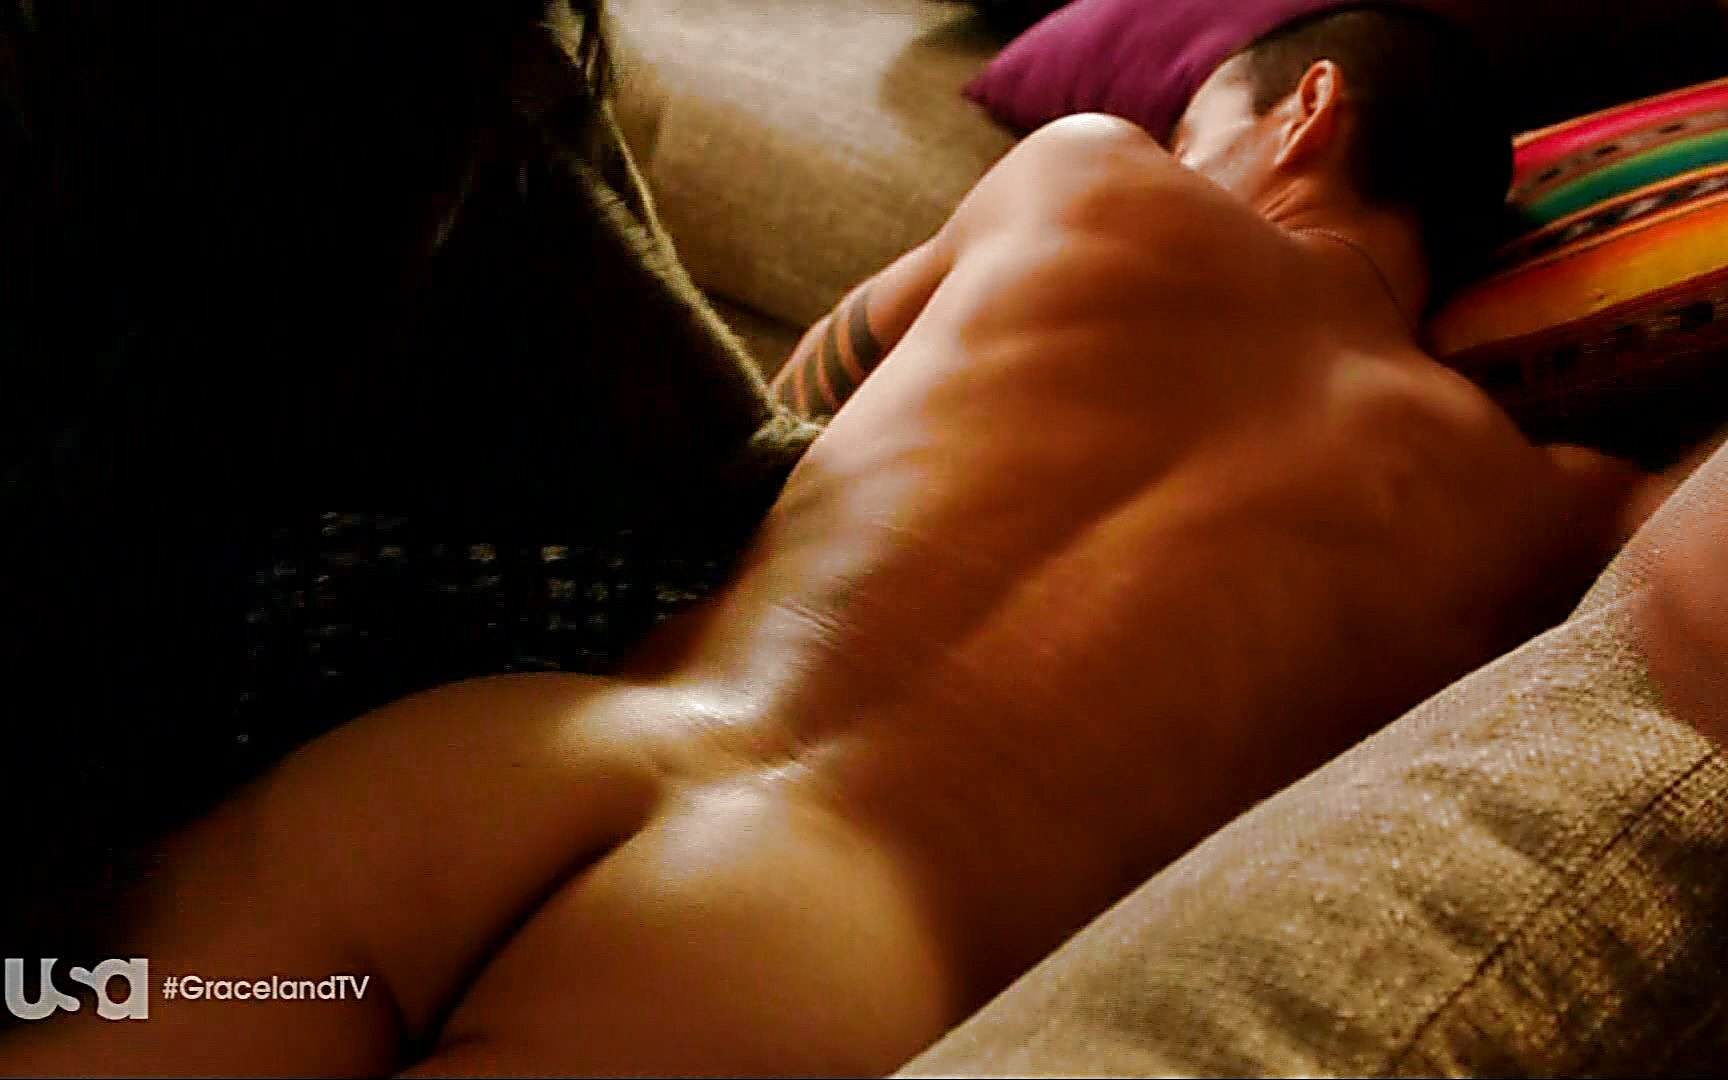 Manny Montana sexy shirtless scene August 2, 2015, 10pm